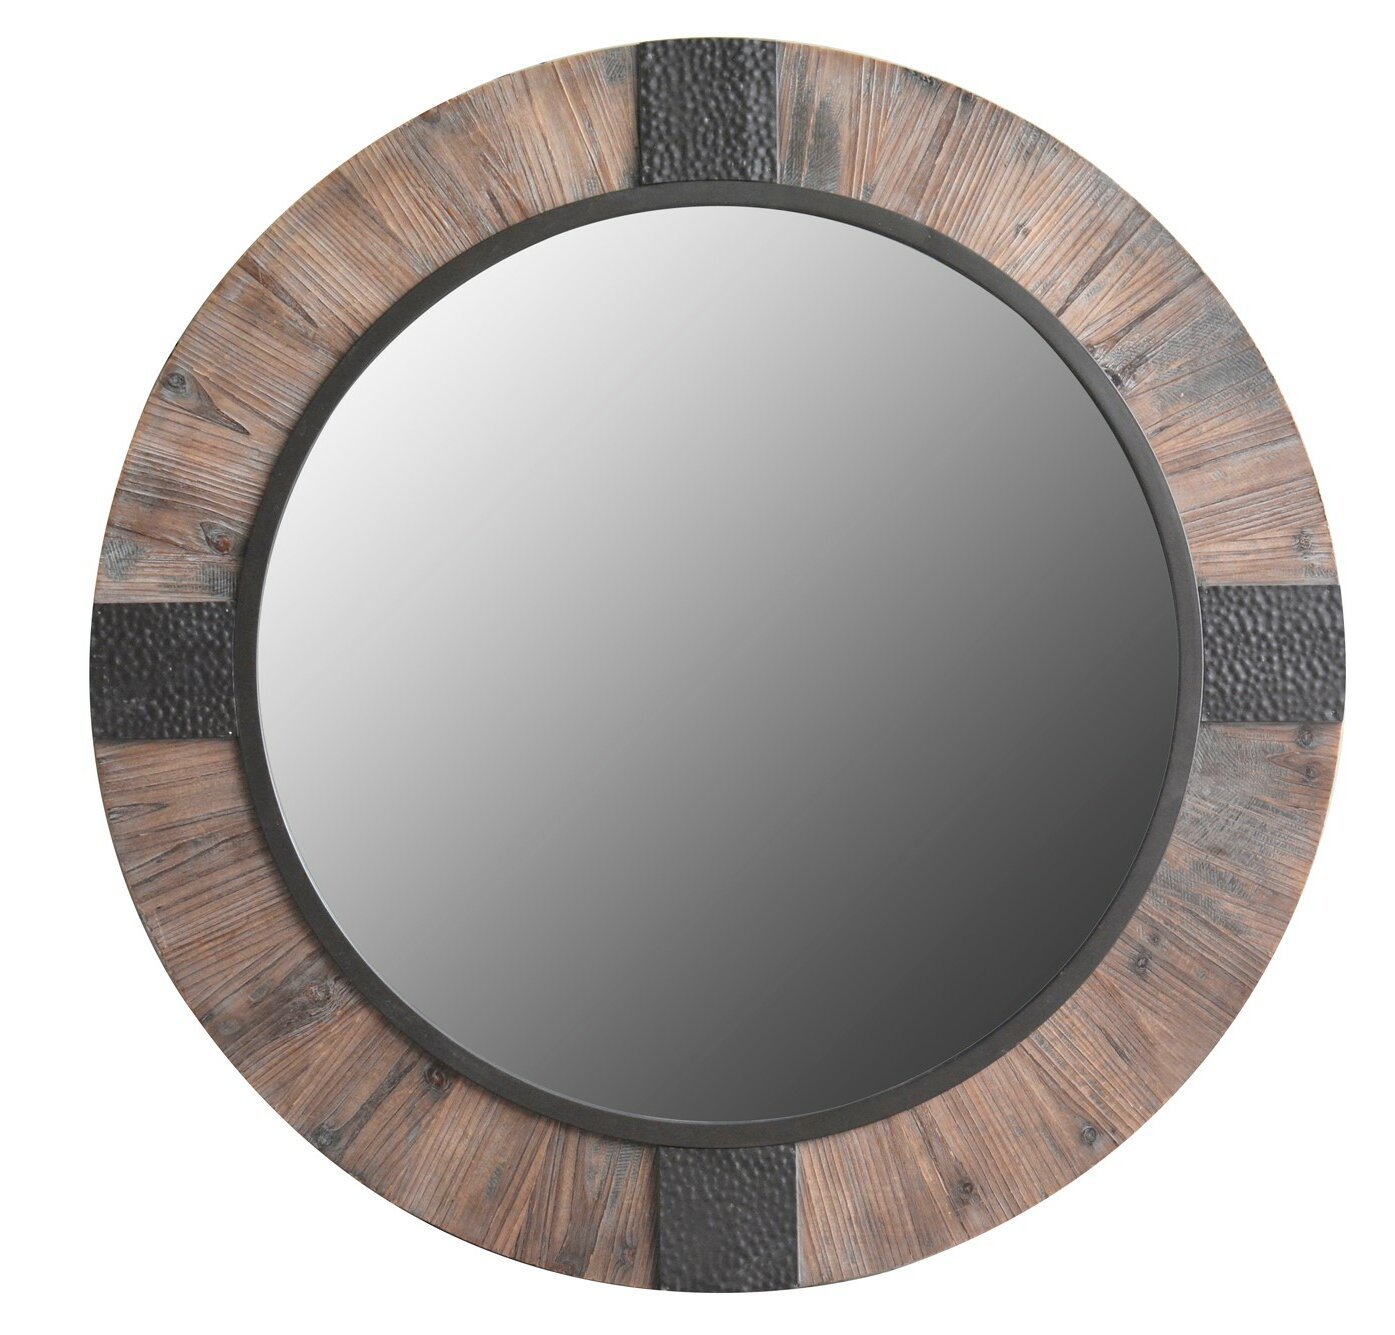 Mariner Round Wood And Metal Decorative Rustic Wall Mirror